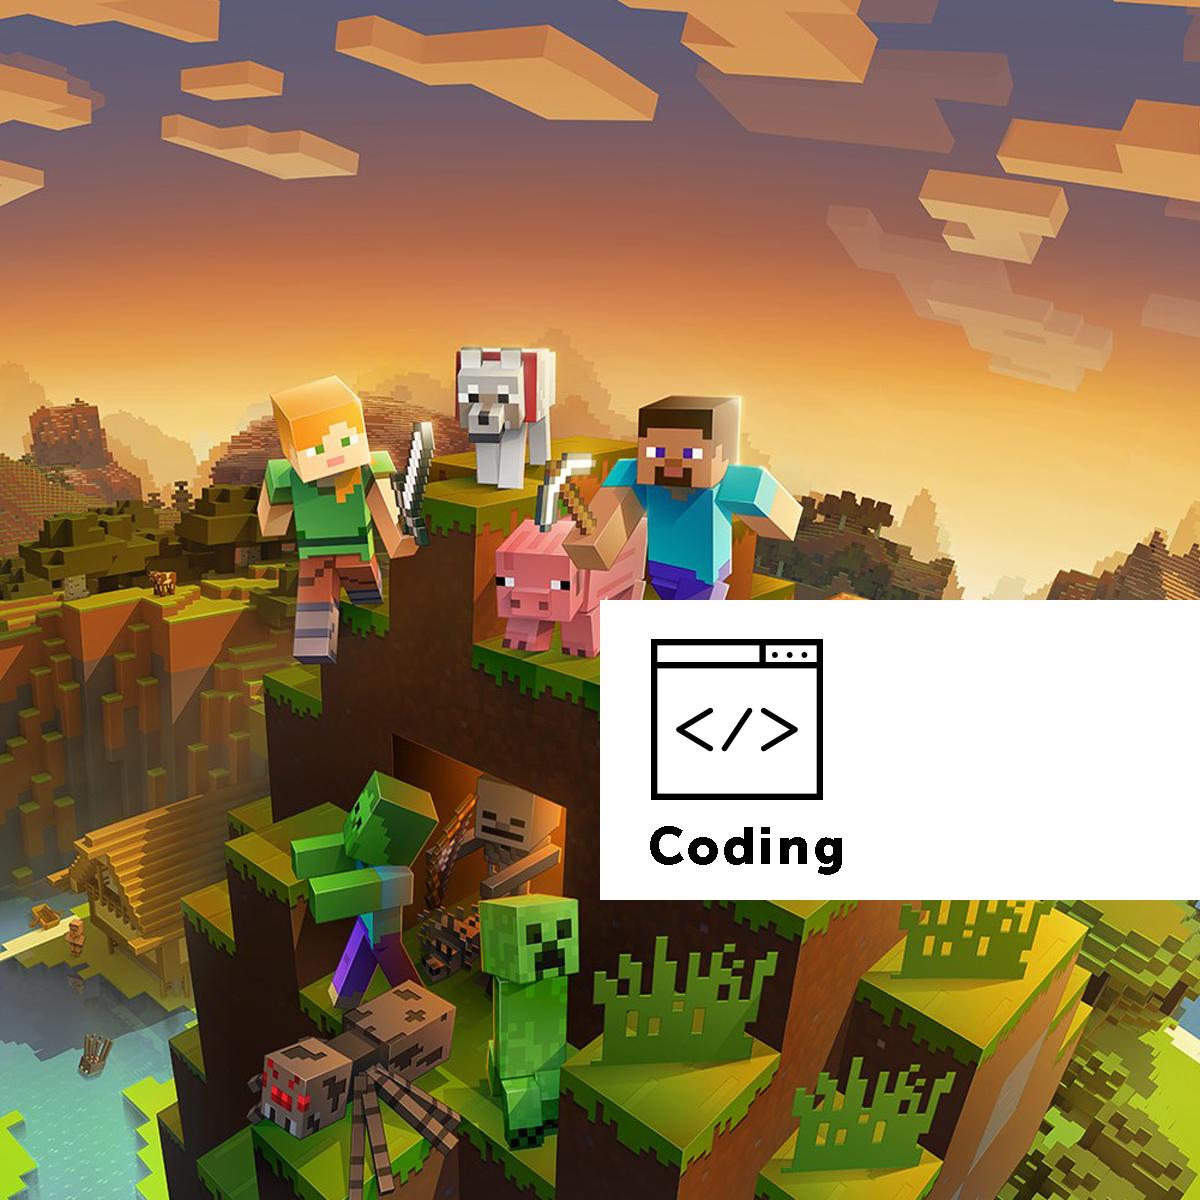 La creatività di Minecraft in classe